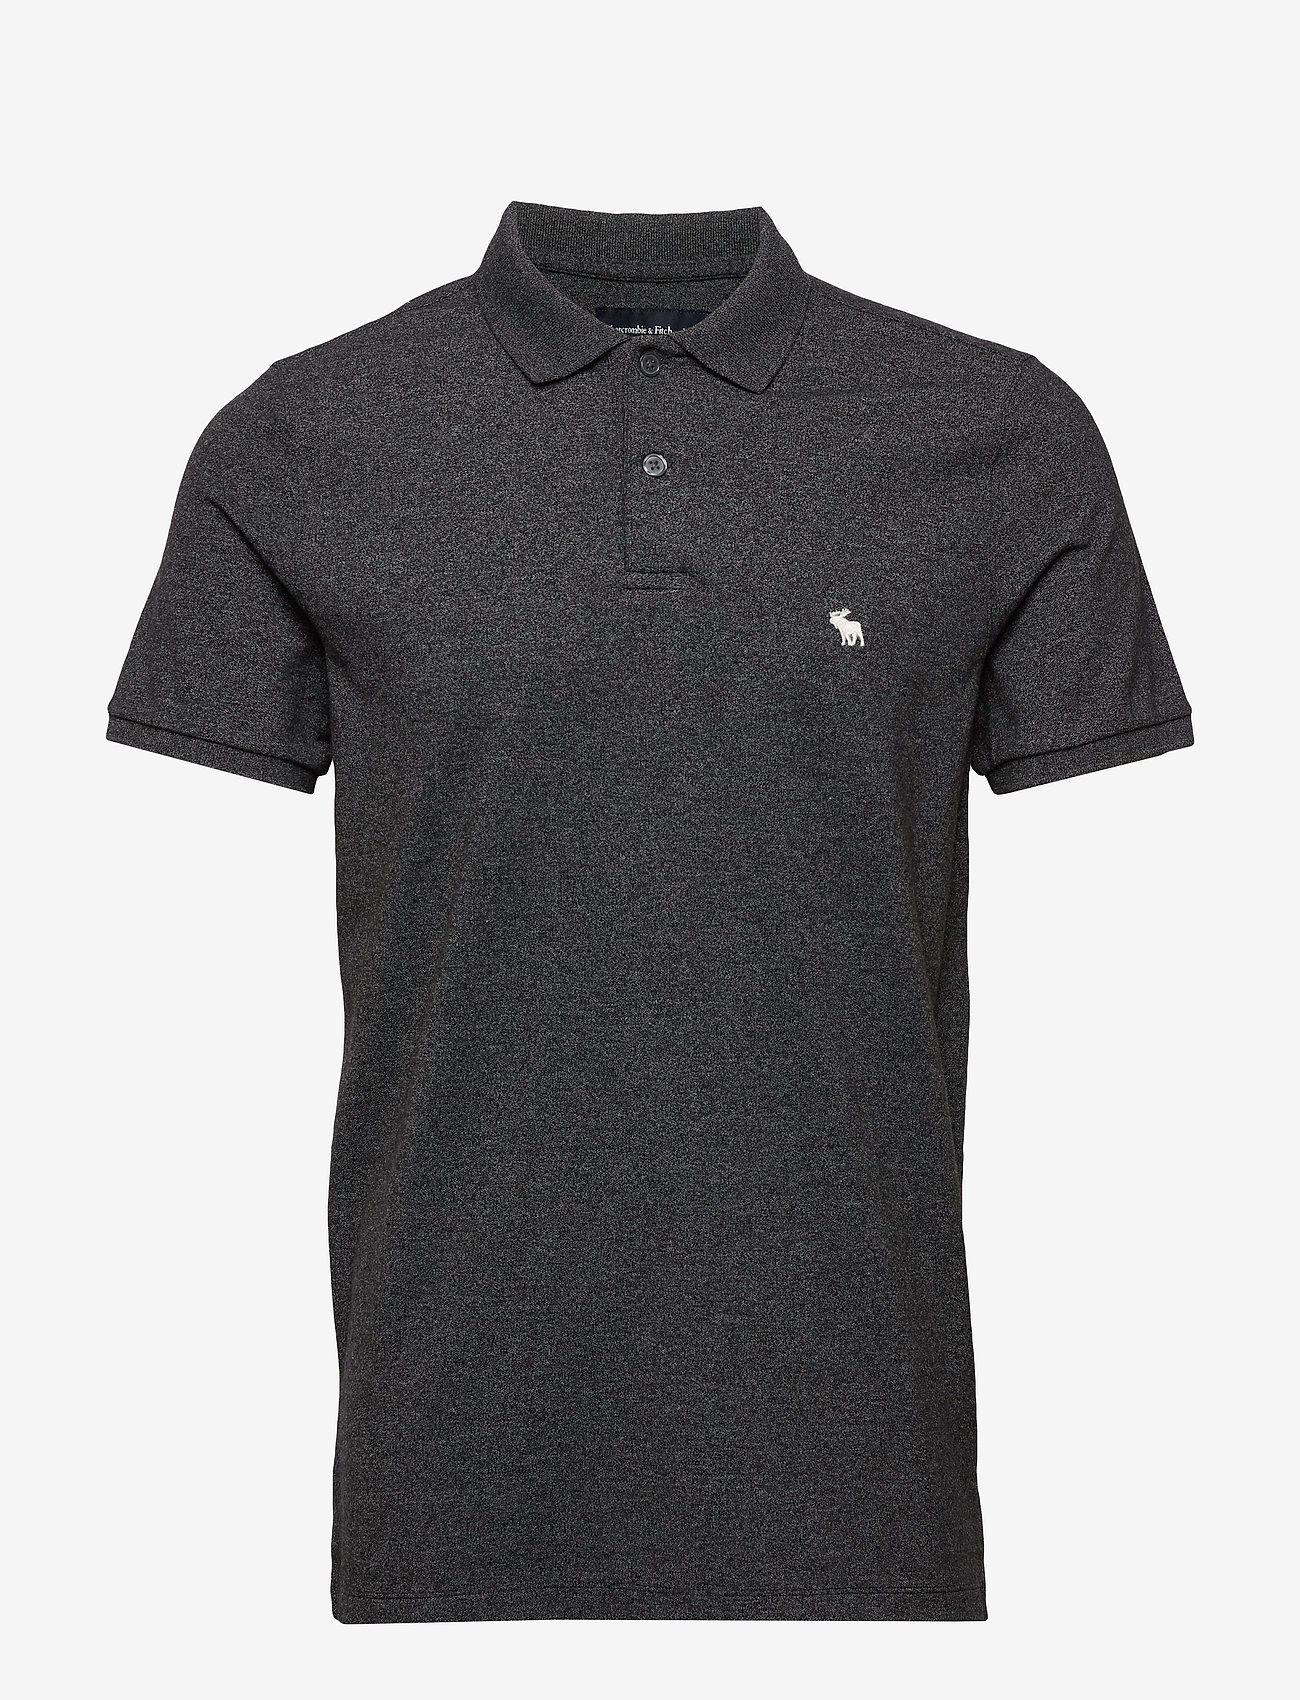 Abercrombie & Fitch - ANF MENS KNITS - polos à manches courtes - black dd - 0